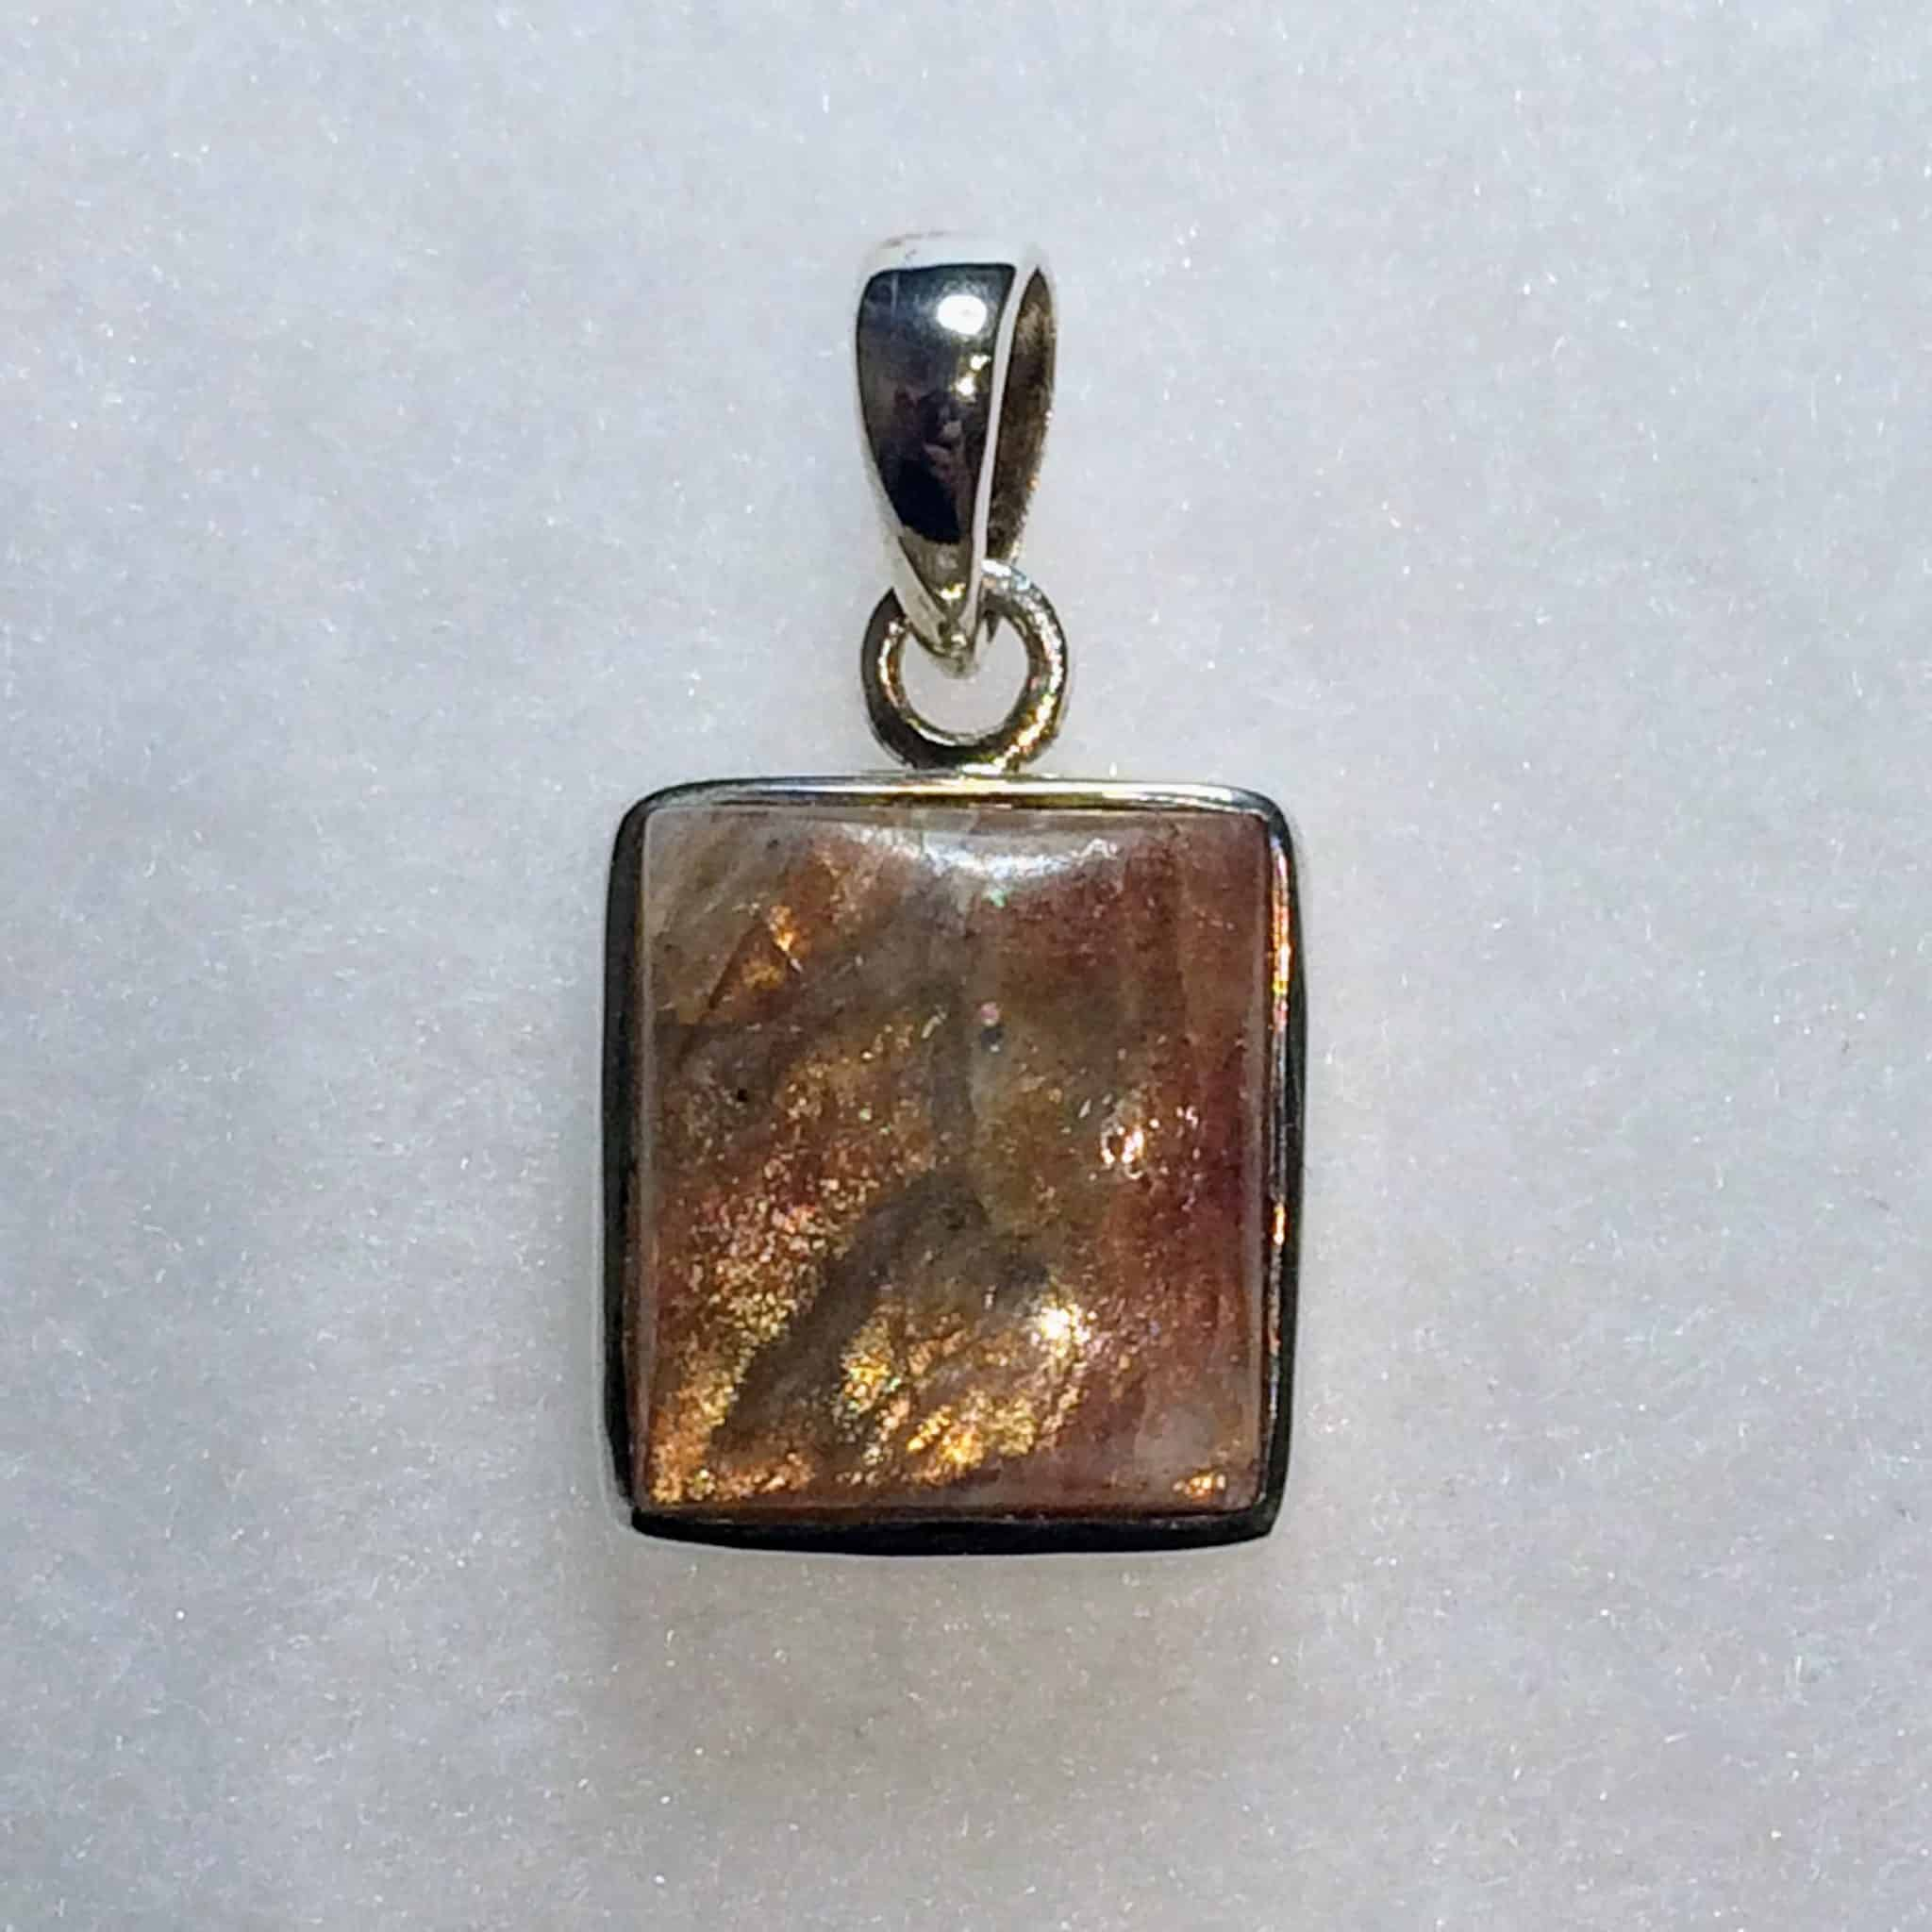 sunstone manifestation abundance chinese charm listing luck orgonite money orgone fullxfull good coin pendant talisman il